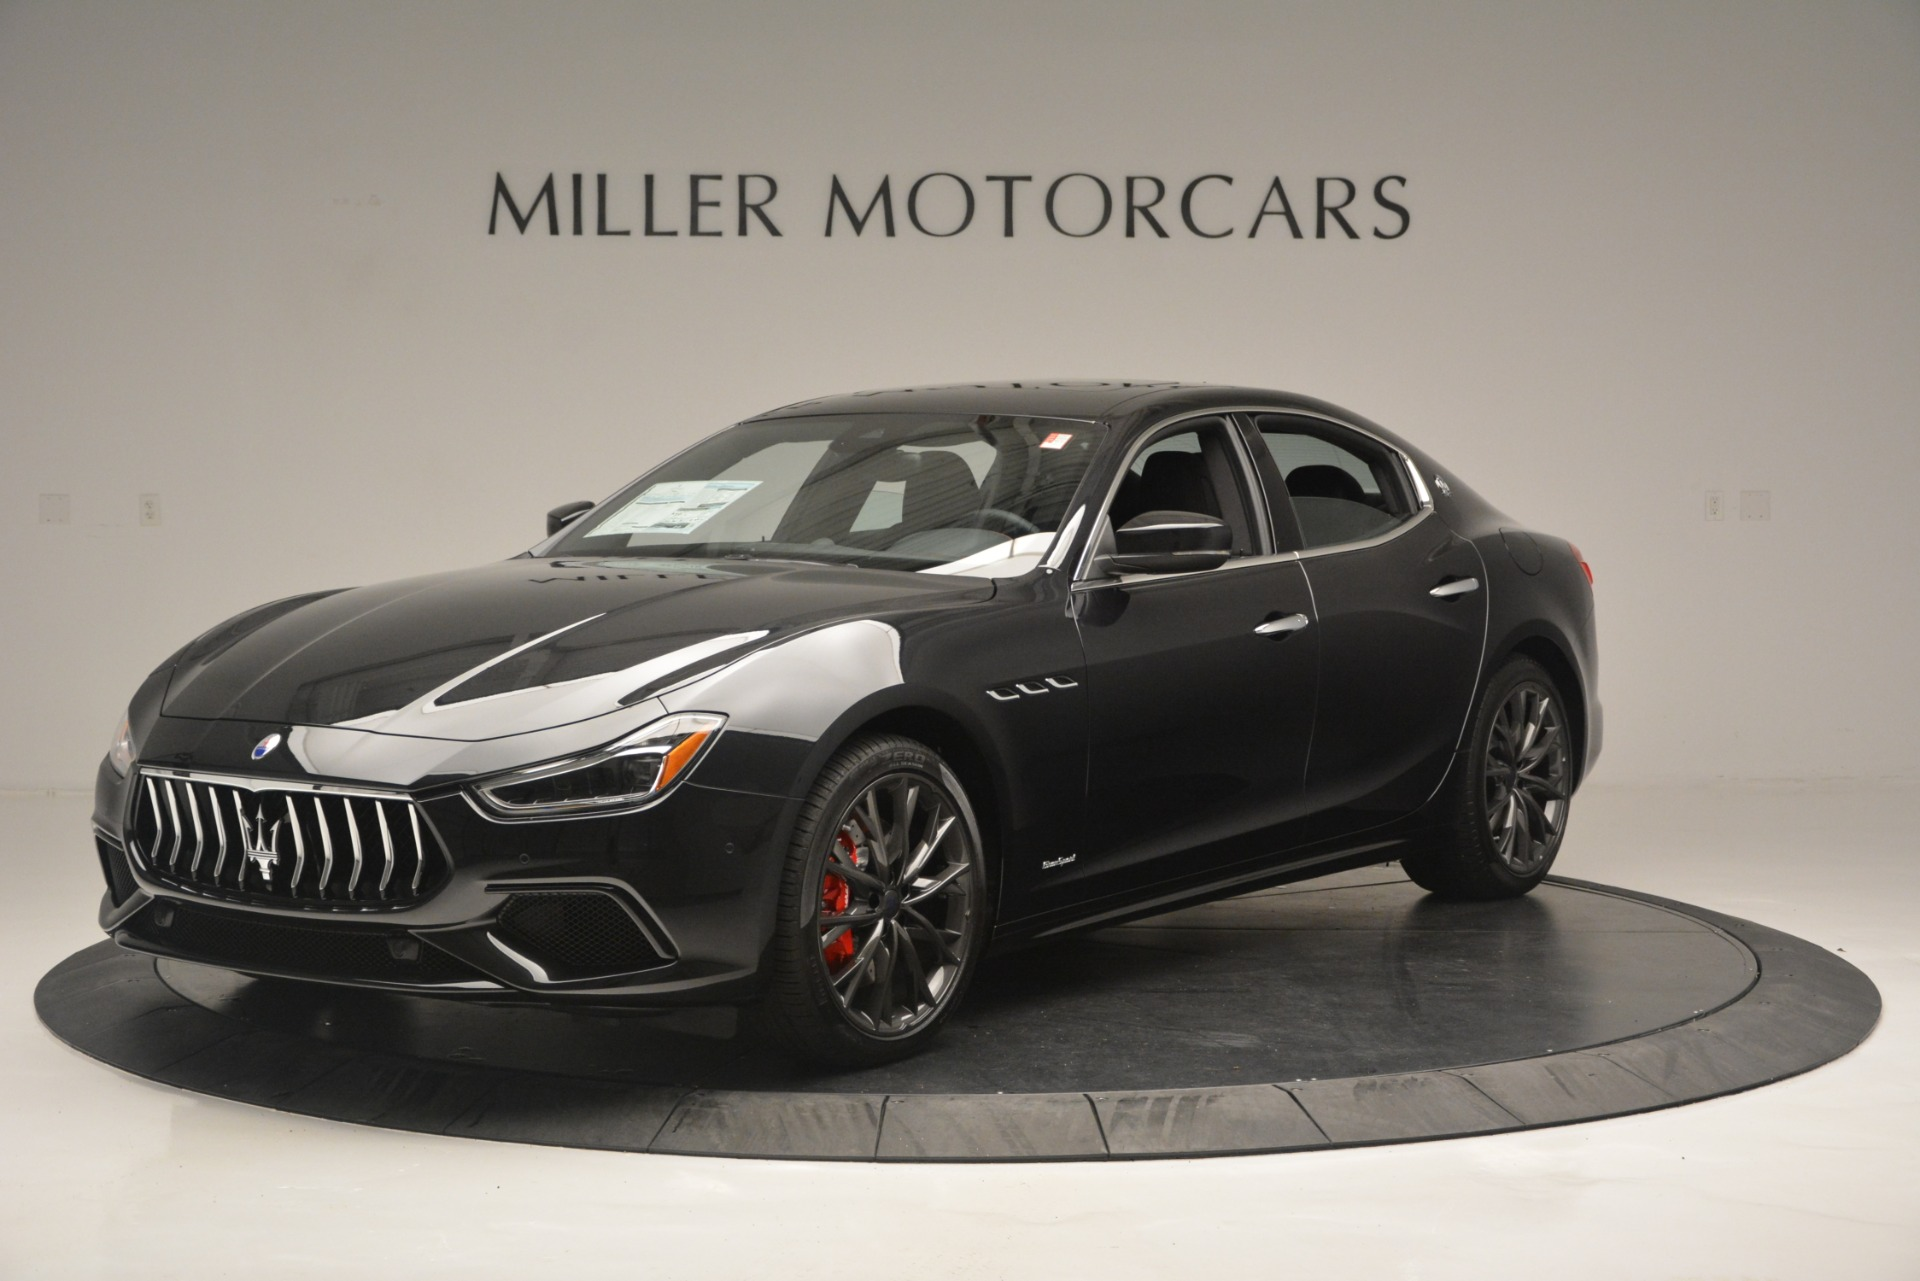 New 2019 Maserati Ghibli S Q4 GranSport For Sale In Westport, CT 2765_p2